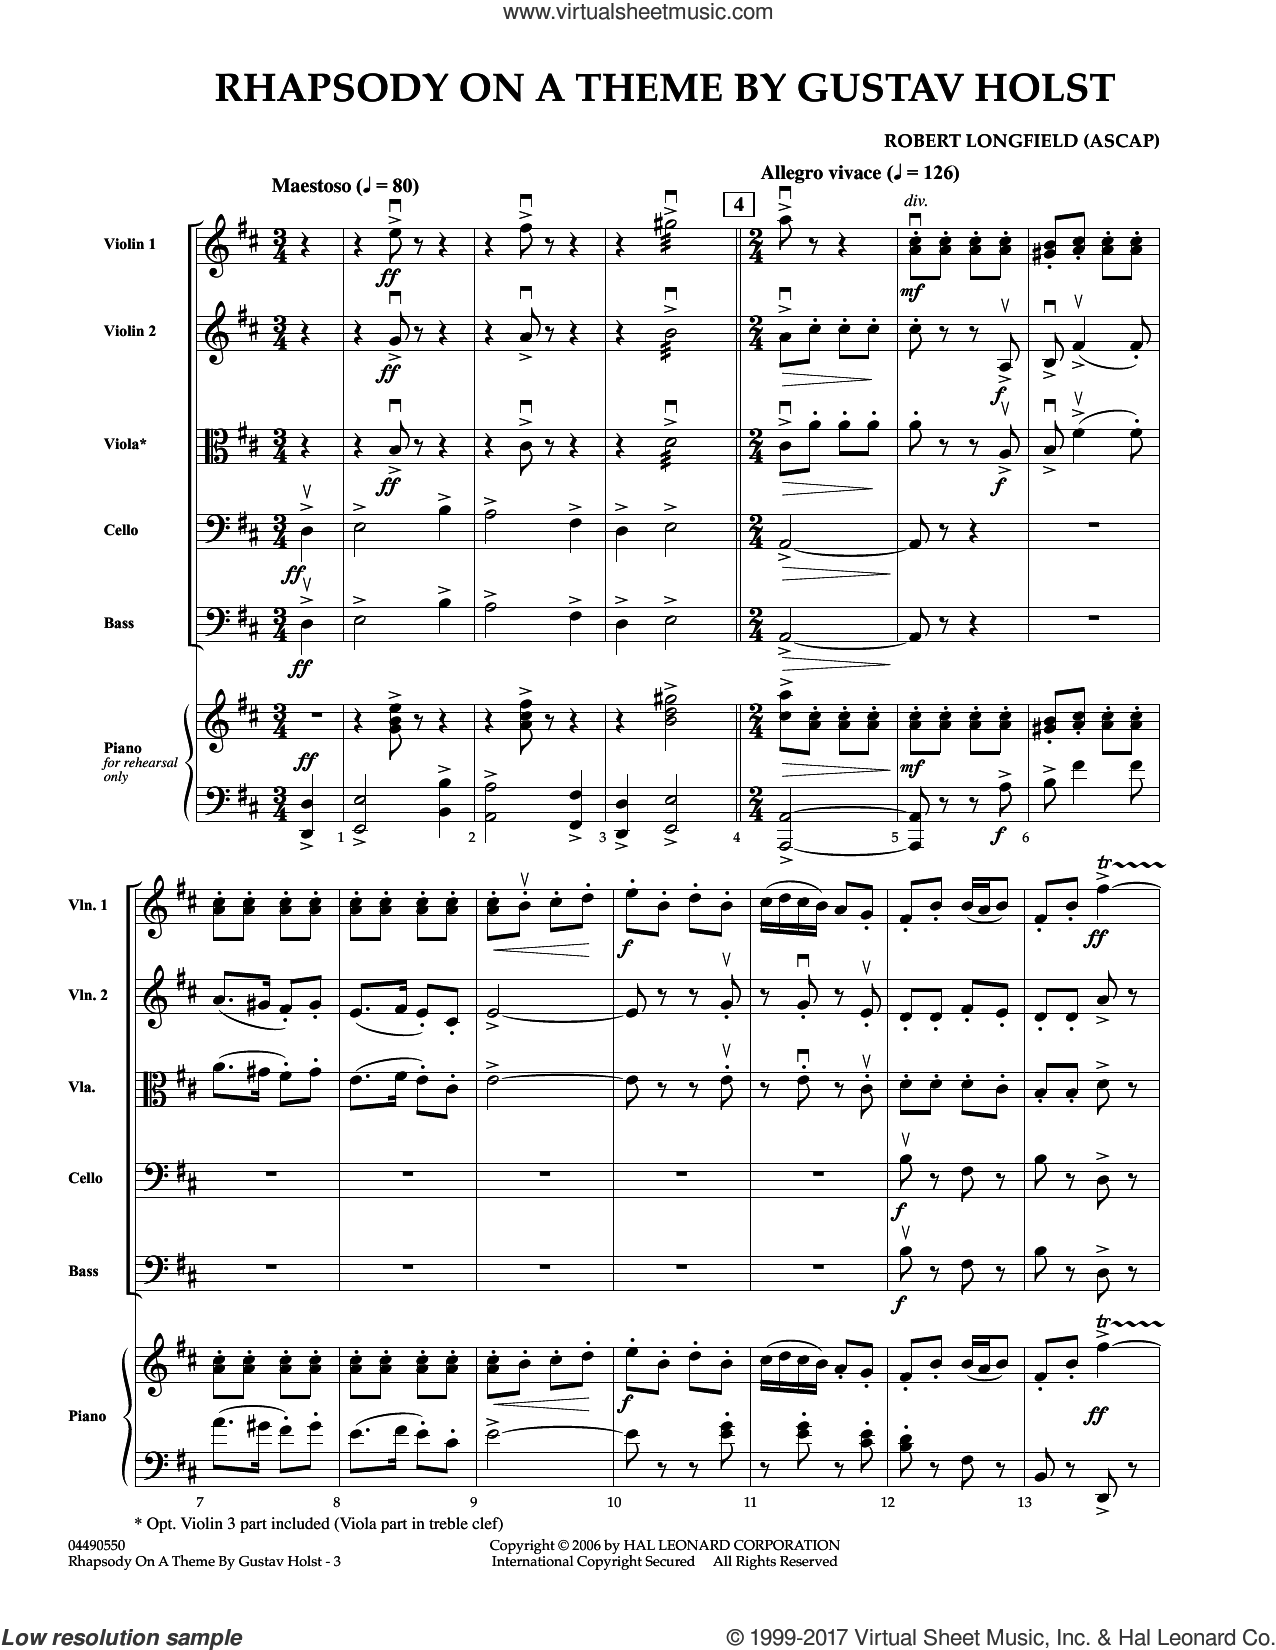 Rhapsody On A Theme by Gustav Holst (COMPLETE) sheet music for orchestra by Robert Longfield and Gustav Holst, classical score, intermediate skill level